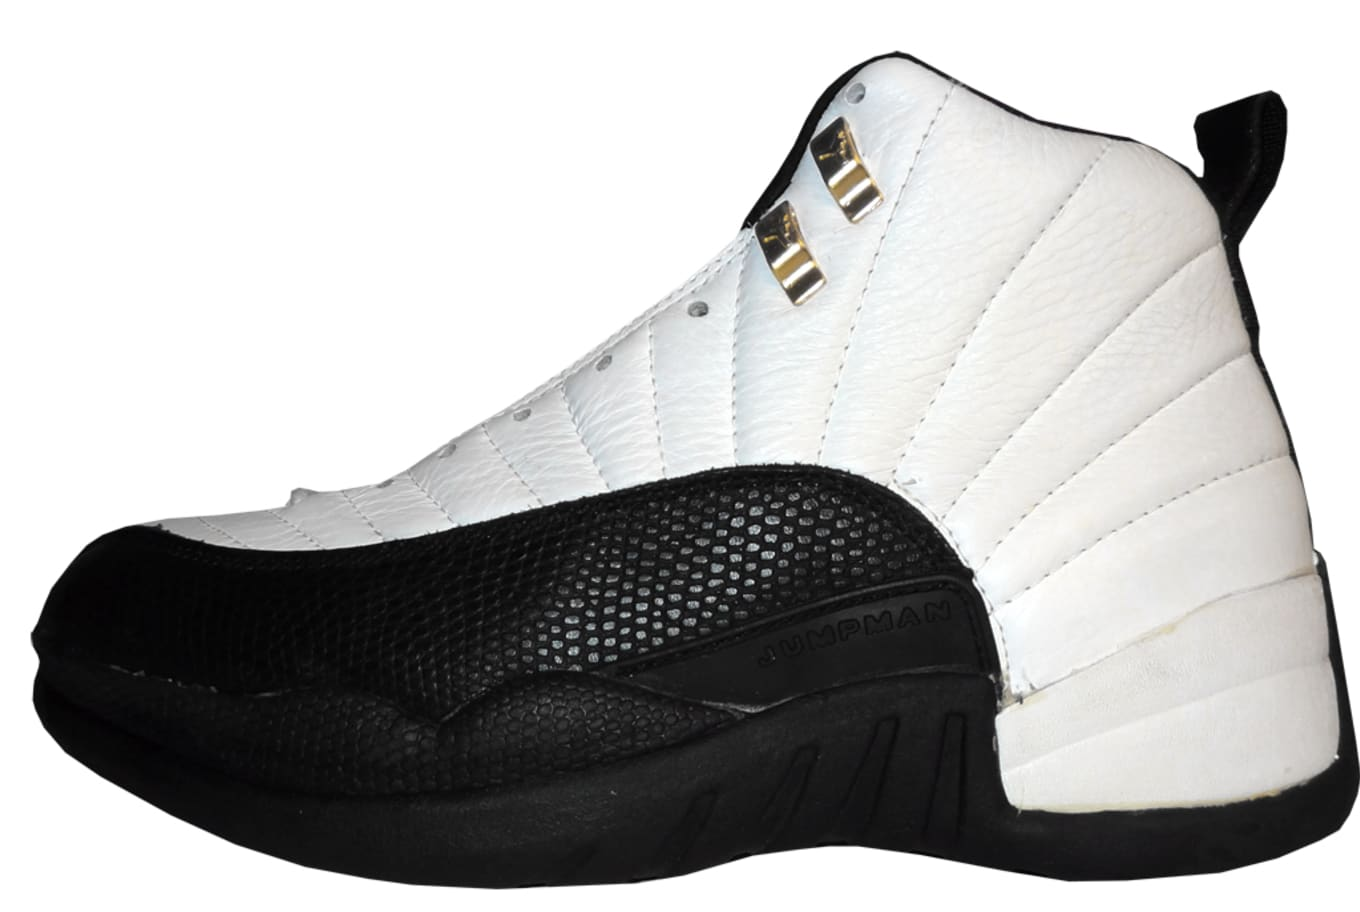 best cheap 5738c c7b99 Air Jordan XII Taxi 130690-101. WhiteBlack-Taxi